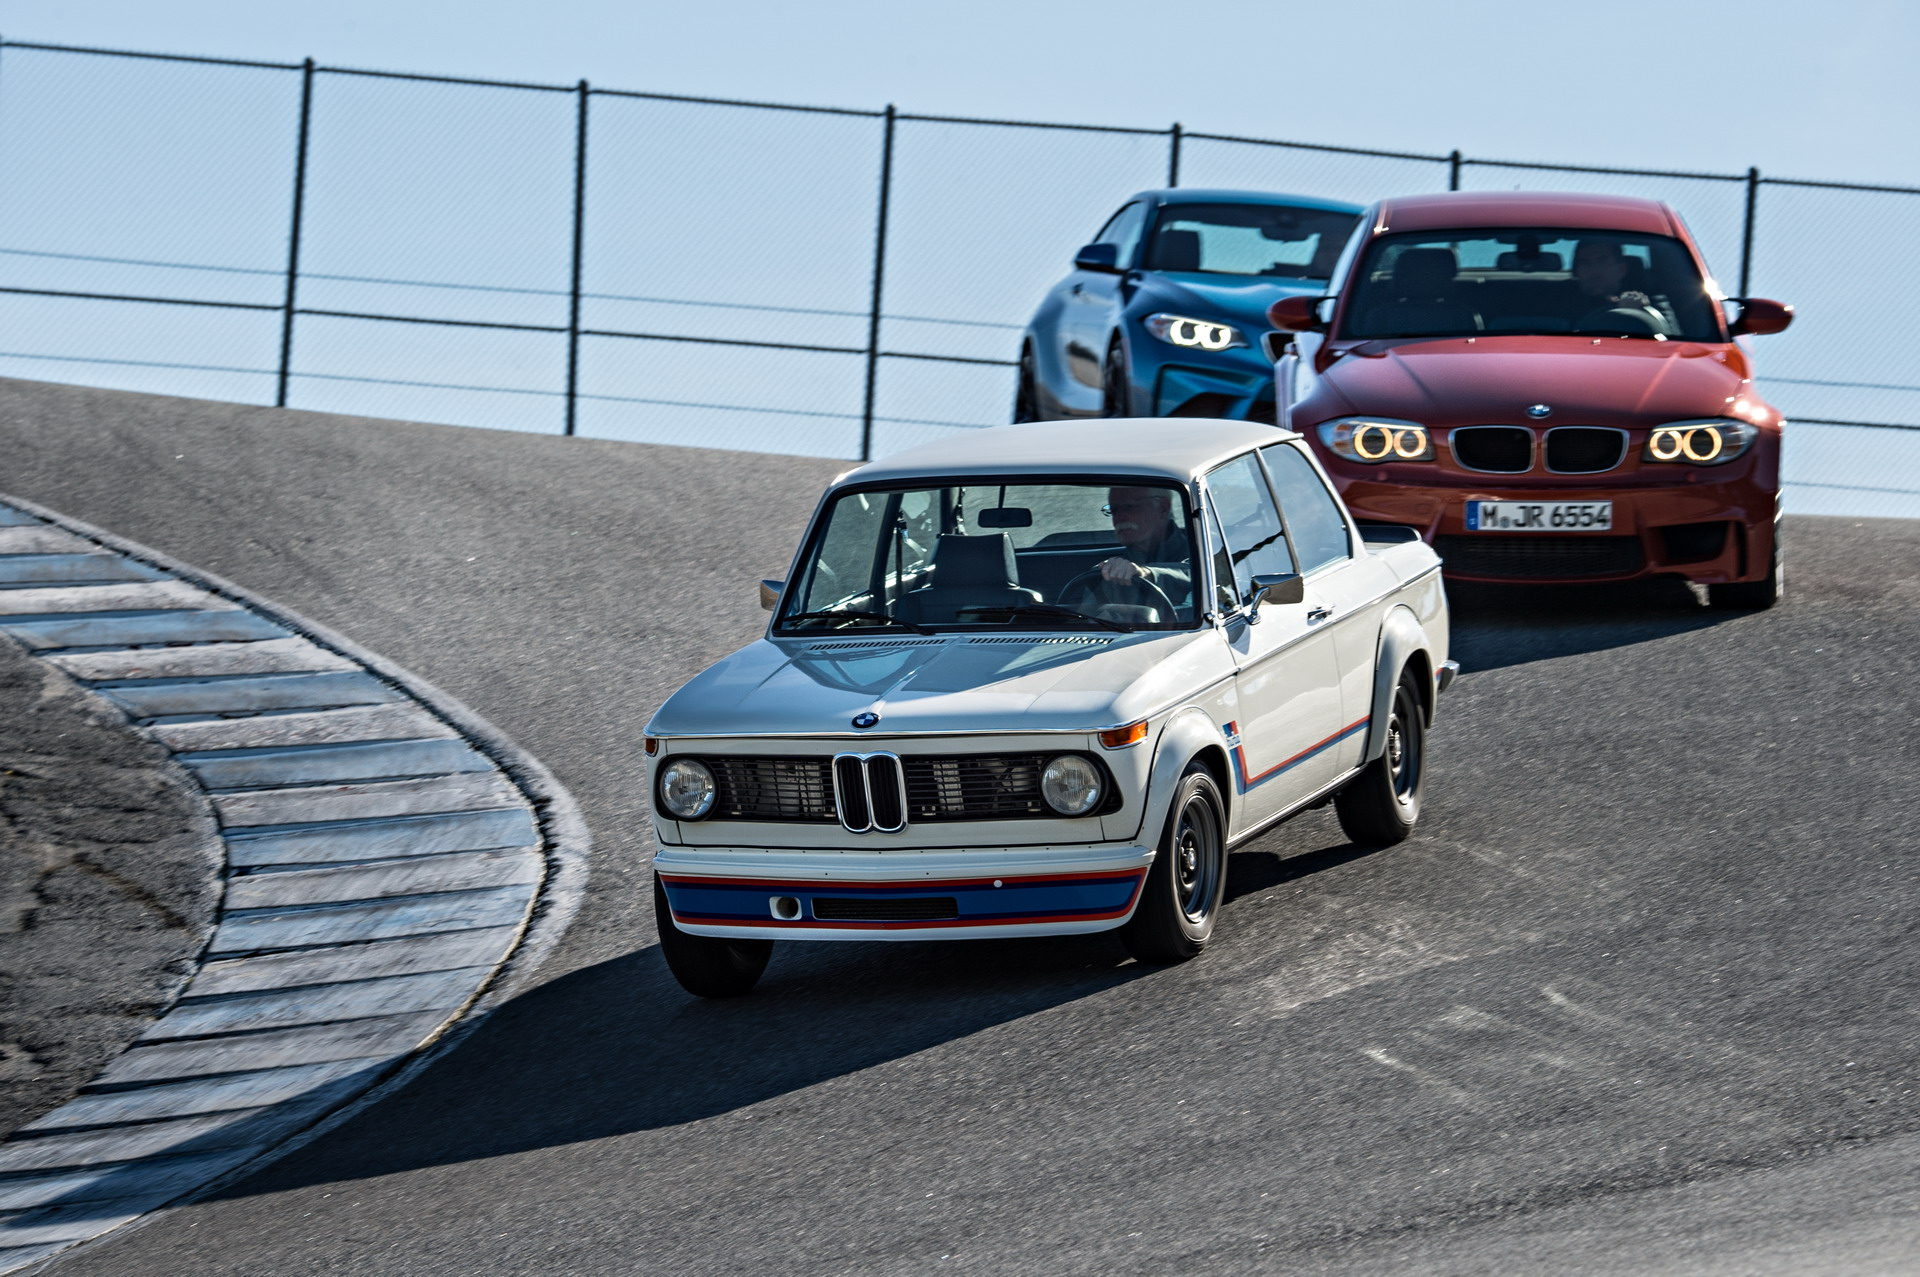 The BMW 2002 16